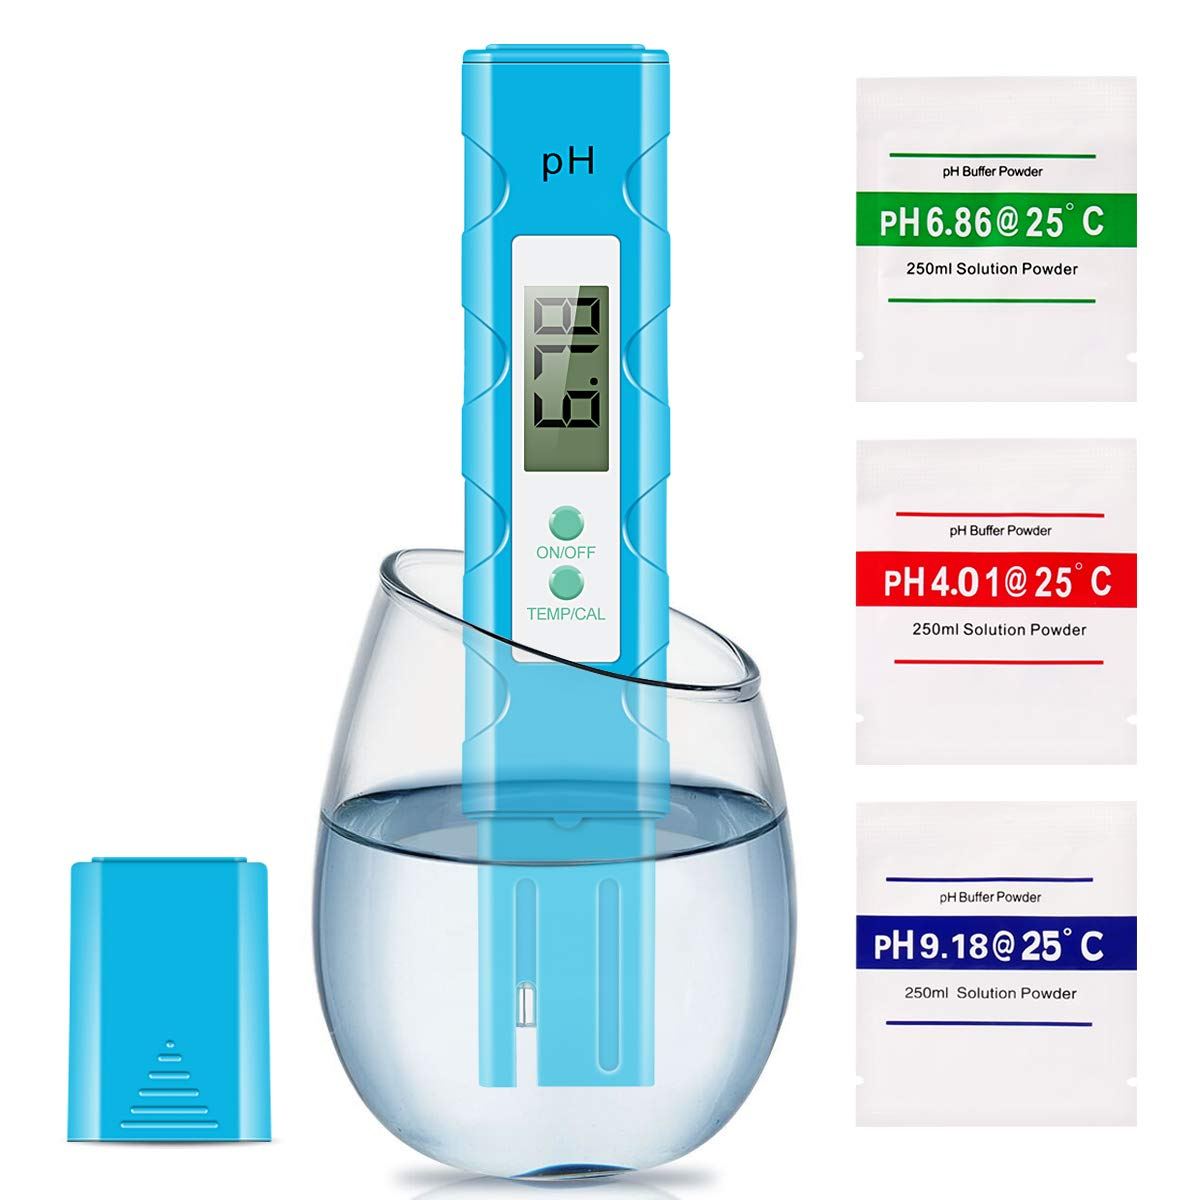 Digital PH Meter, 0.01 High Accuracy Pocket Size Meter/PH 0-14.0 Measuring Range, Quality Tester for Household Drinking Water, Swimming Pools, Aquariums by Pop V